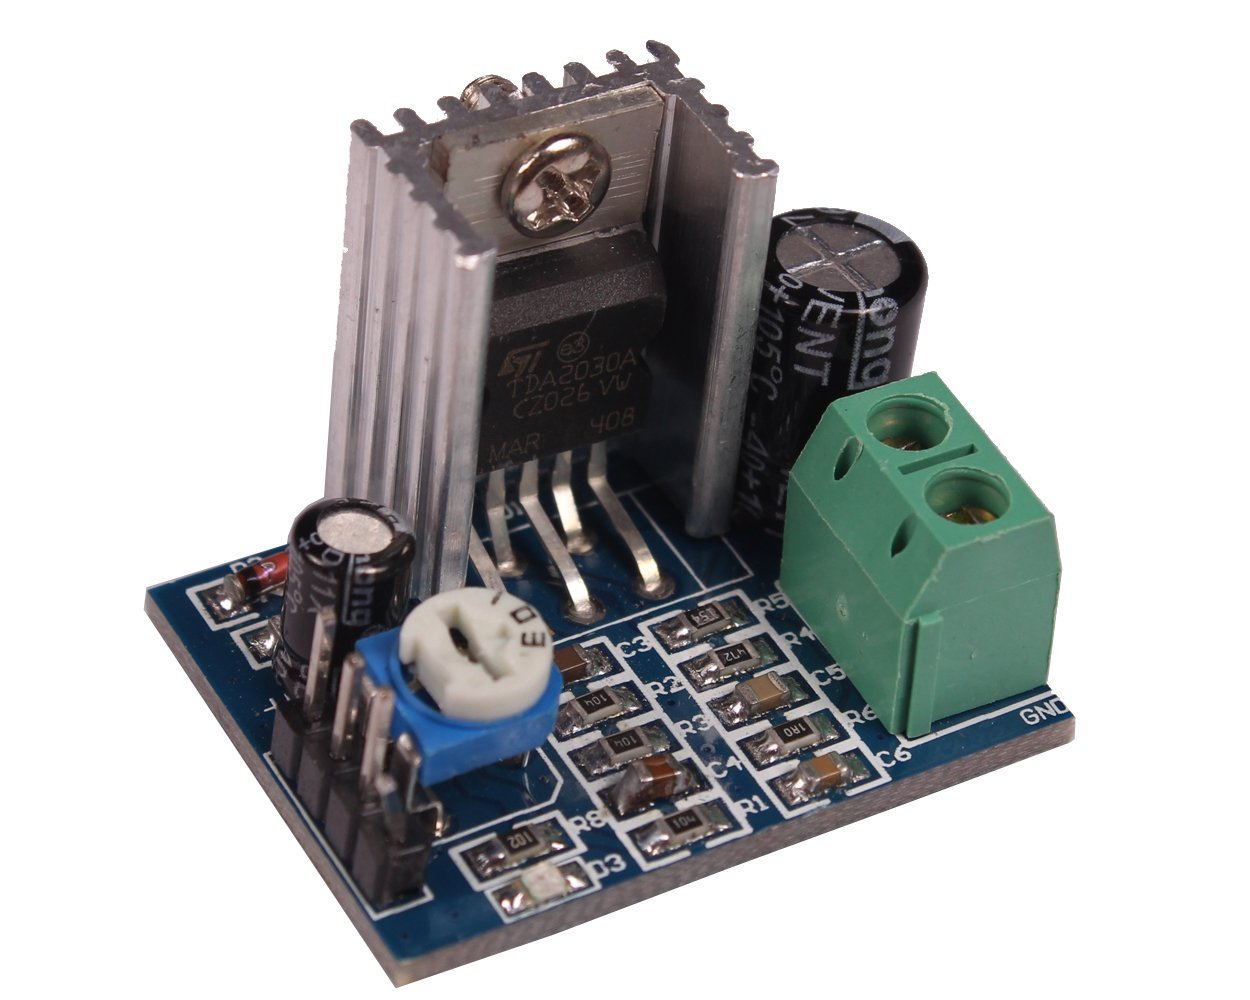 Tda2030 Module Power Supply Audio Amplifier Board Lm675 In Ac Current Source Application General Purpose Tda2030a 6 12v 18w